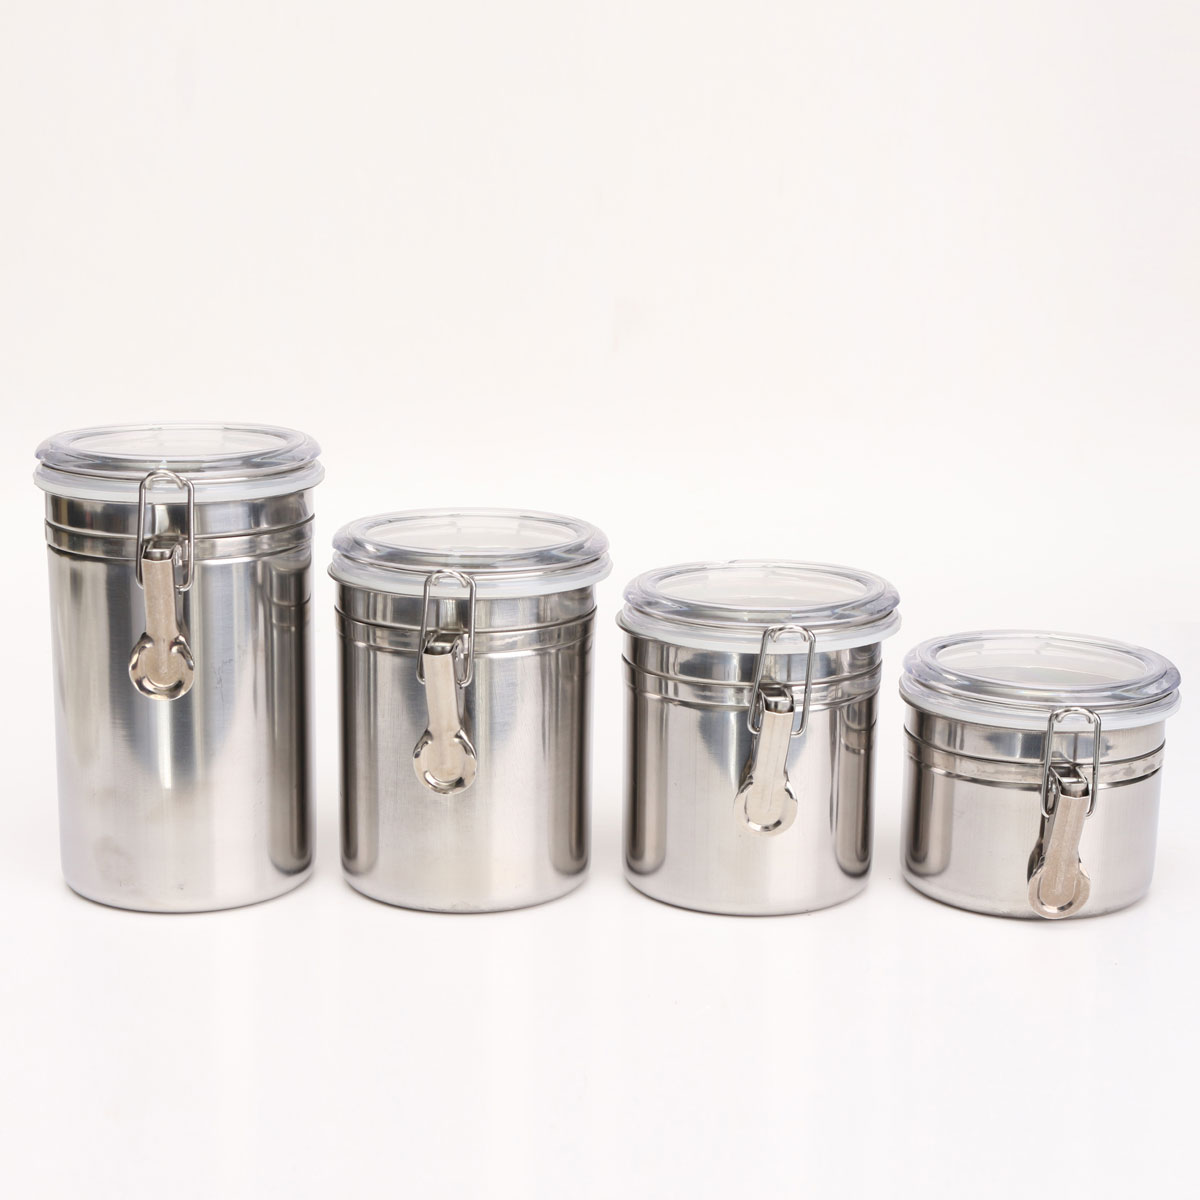 Airtight Stainless Steel Cabinet ~ Pcs airtight stainless steel canisters storage